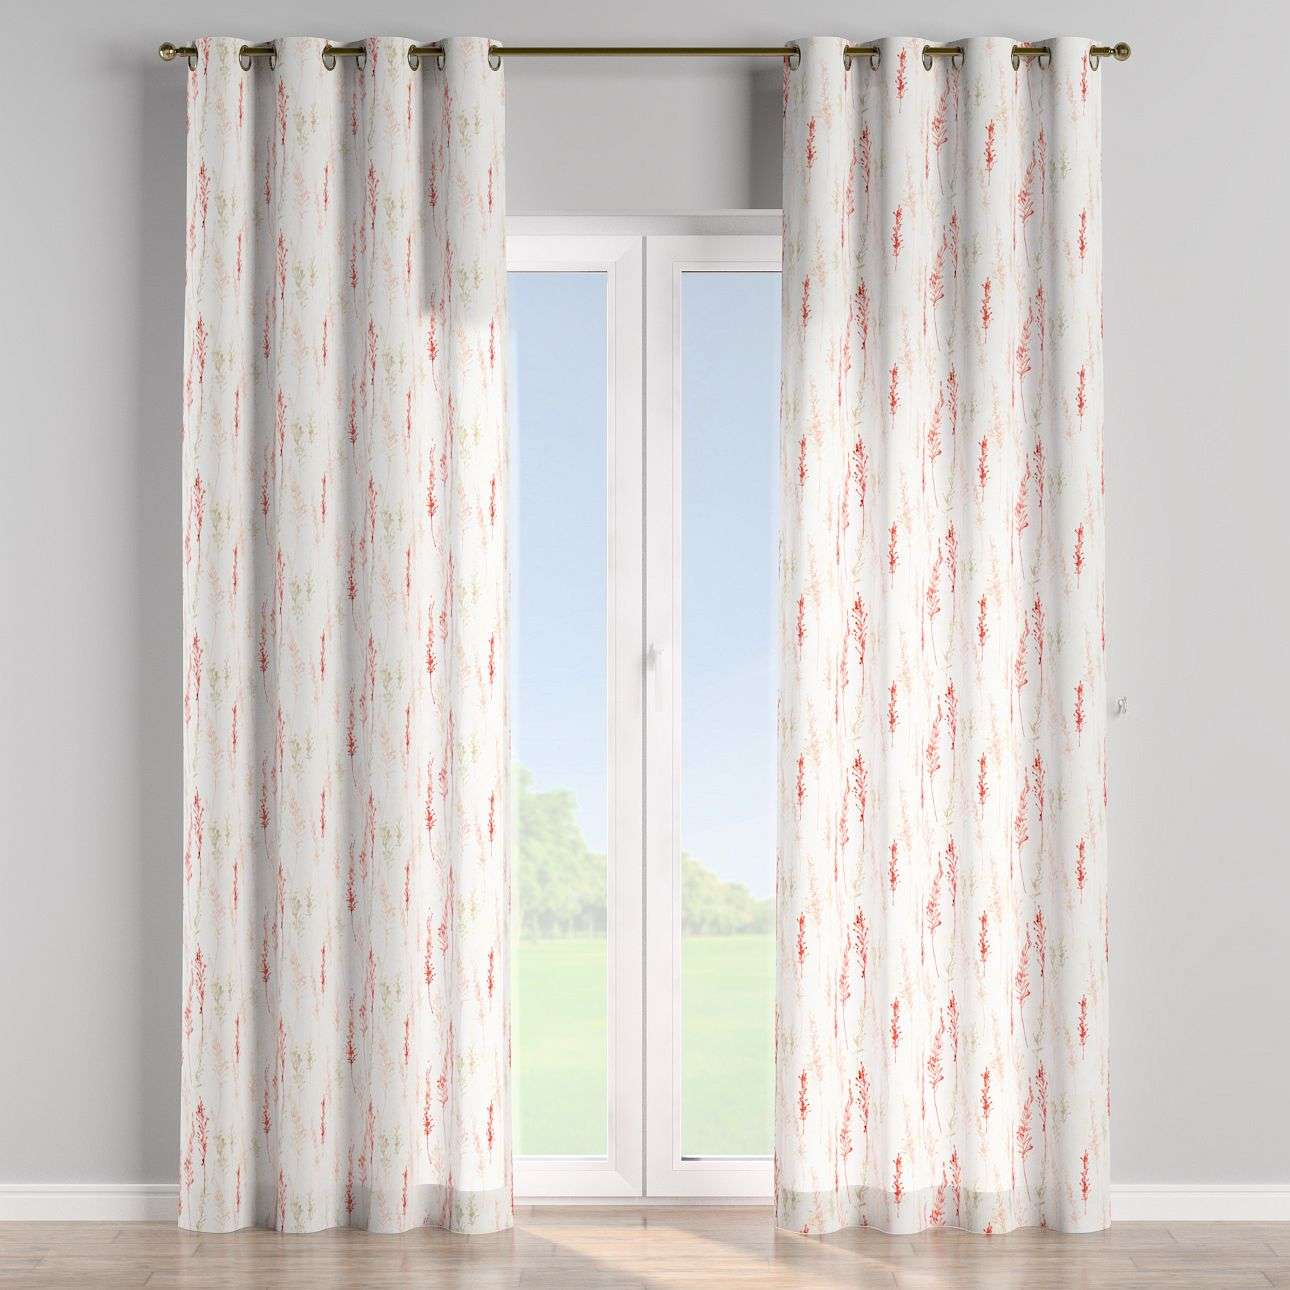 Eyelet curtains 130 x 260 cm (51 x 102 inch) in collection Acapulco, fabric: 141-37